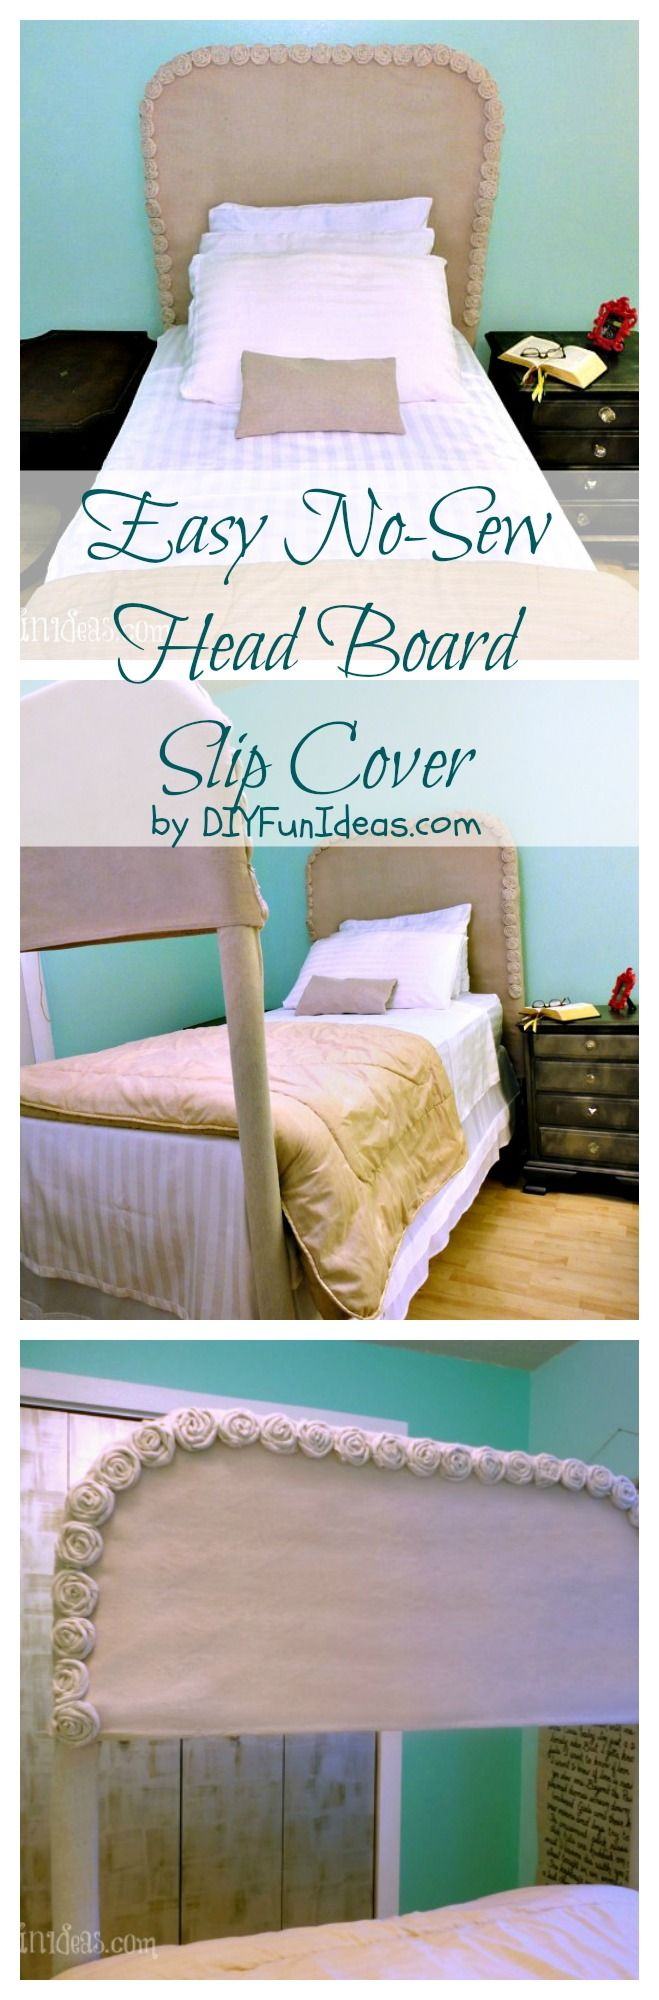 Easy $13 bedroom update with DIY NO-SEW HEADBOARD SLIP COVER W/ DROPCLOTH ROSETTES! ..........Find tons more DIY's at DIYFunIdeas.com